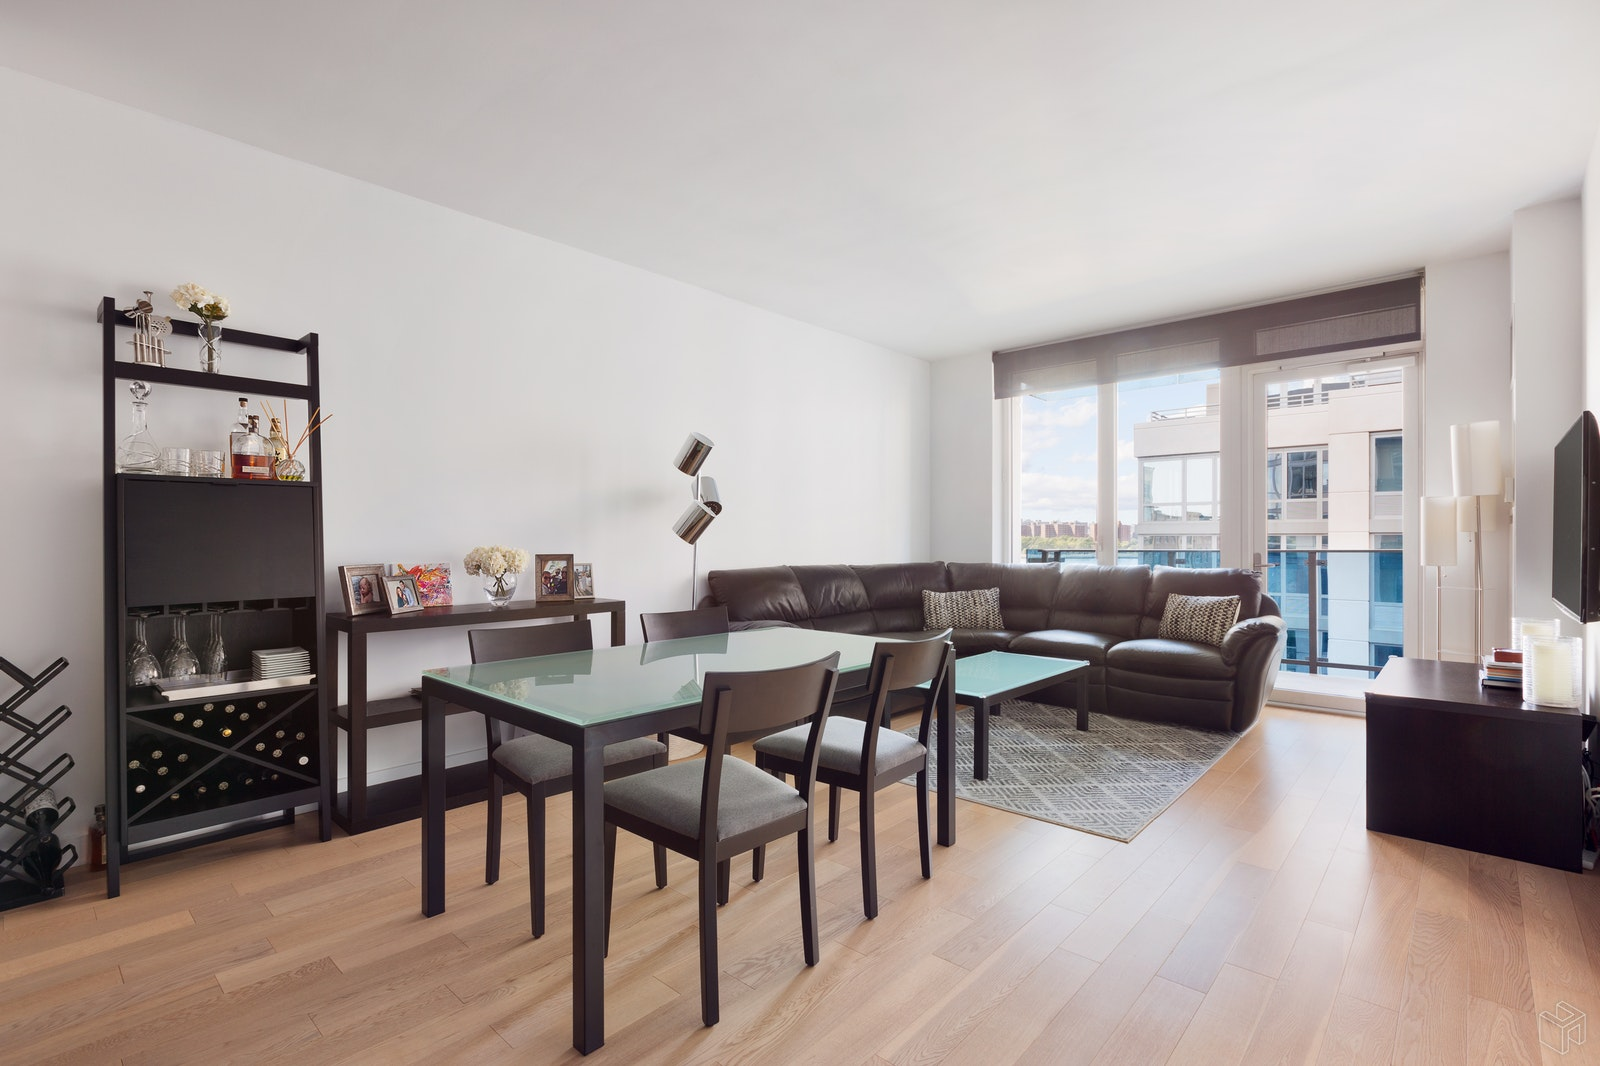 34 North 7th St 6i, Williamsburg, Brooklyn, NY, 11249, $1,299,000, Sold Property, Halstead Real Estate, Photo 1